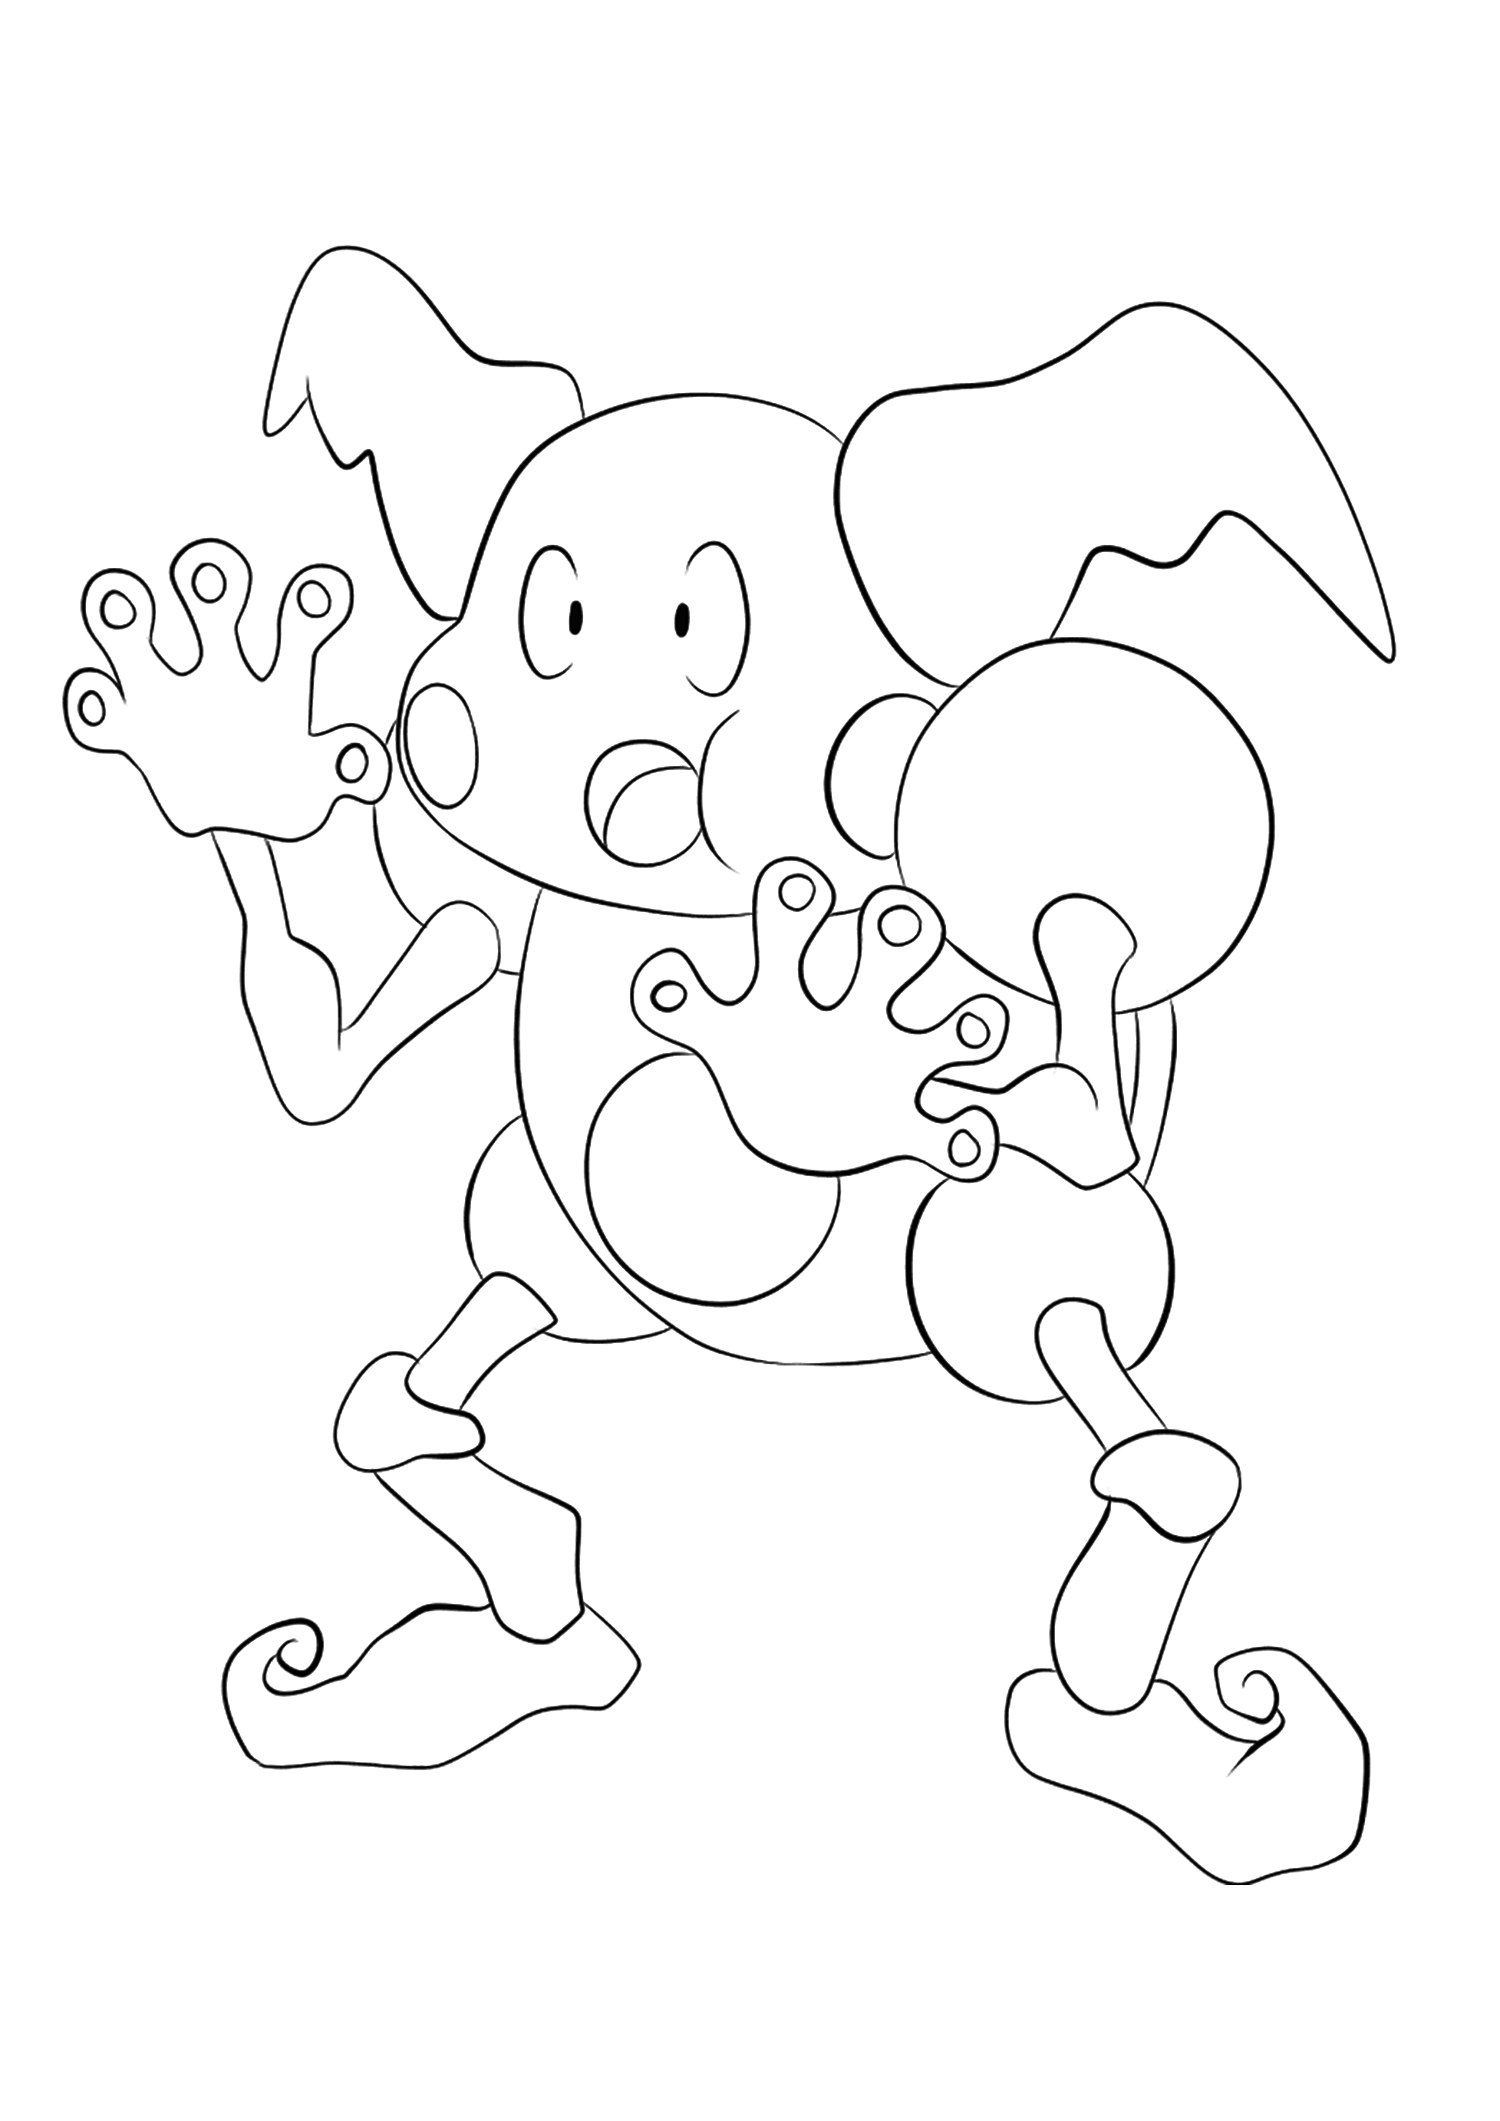 Mr. Mime (No.122)Mr. Mime Coloring page, Generation I Pokemon of type Psychic and FairyOriginal image credit: Pokemon linearts by Lilly Gerbil on Deviantart.Permission:  All rights reserved © Pokemon company and Ken Sugimori.